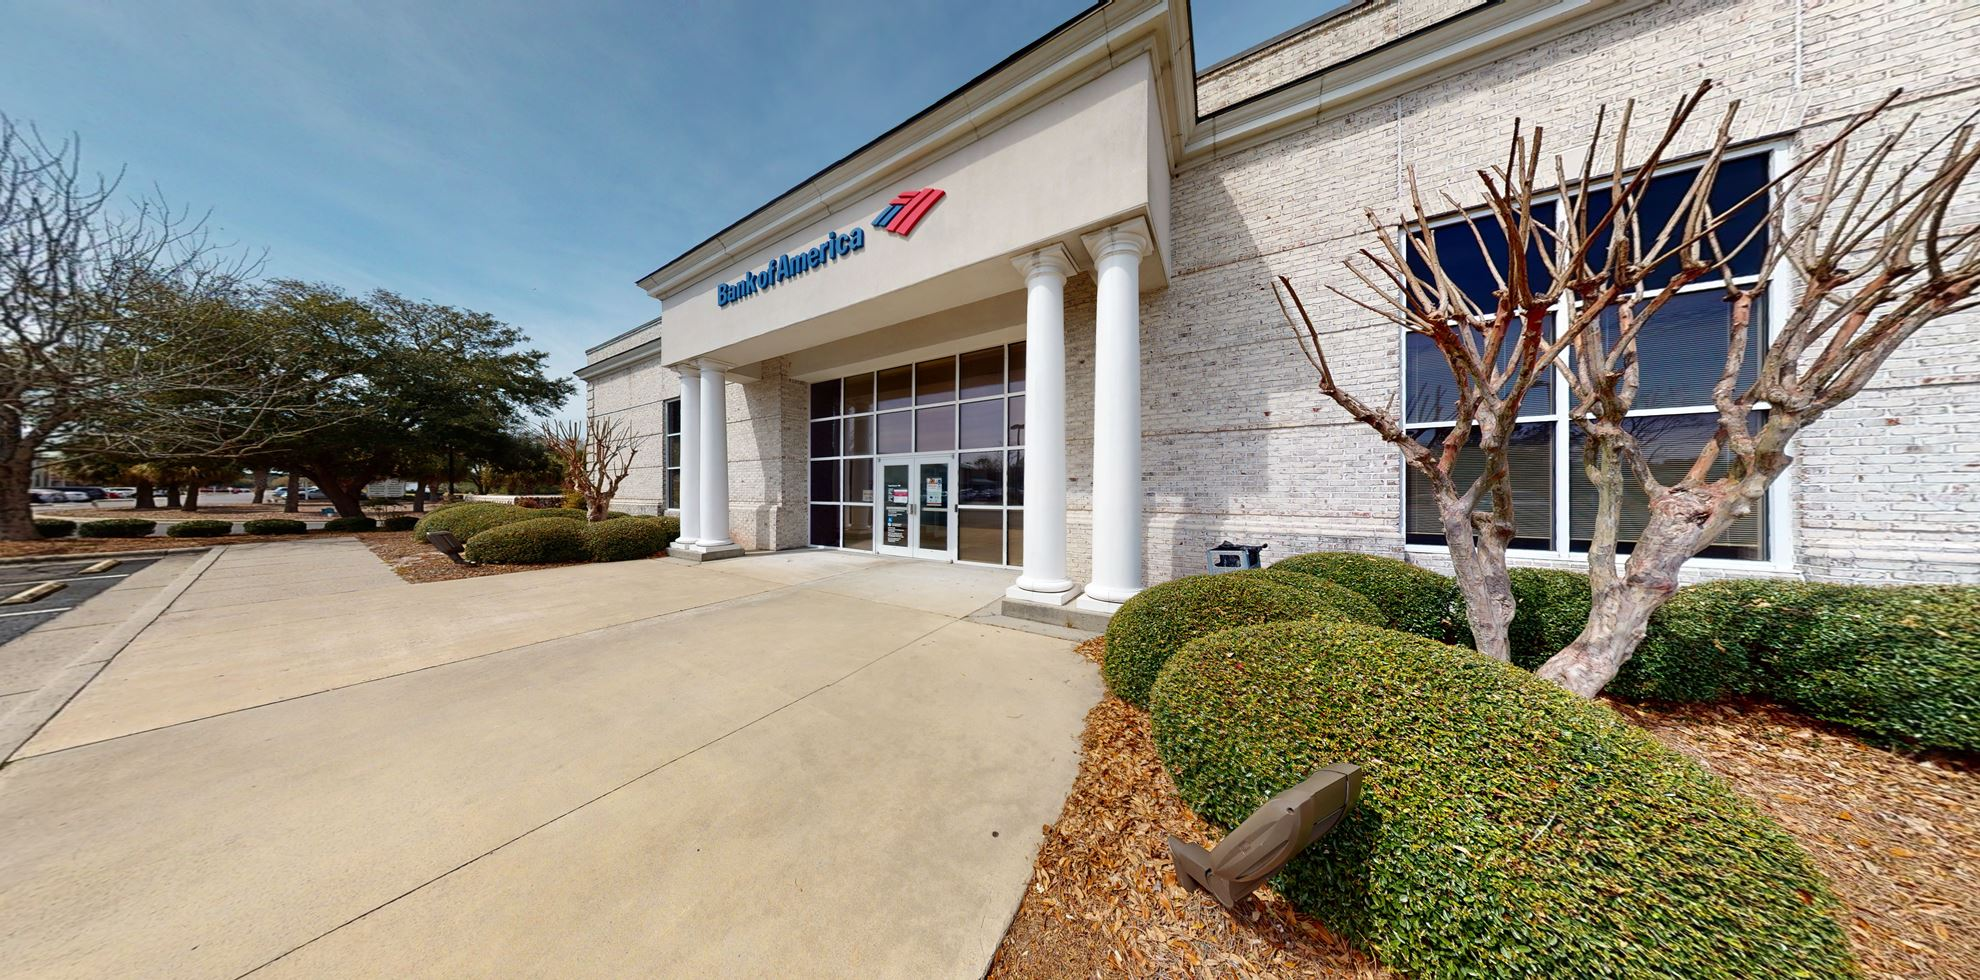 Bank of America financial center with drive-thru ATM and teller   7455 High Market St, Sunset Beach, NC 28468